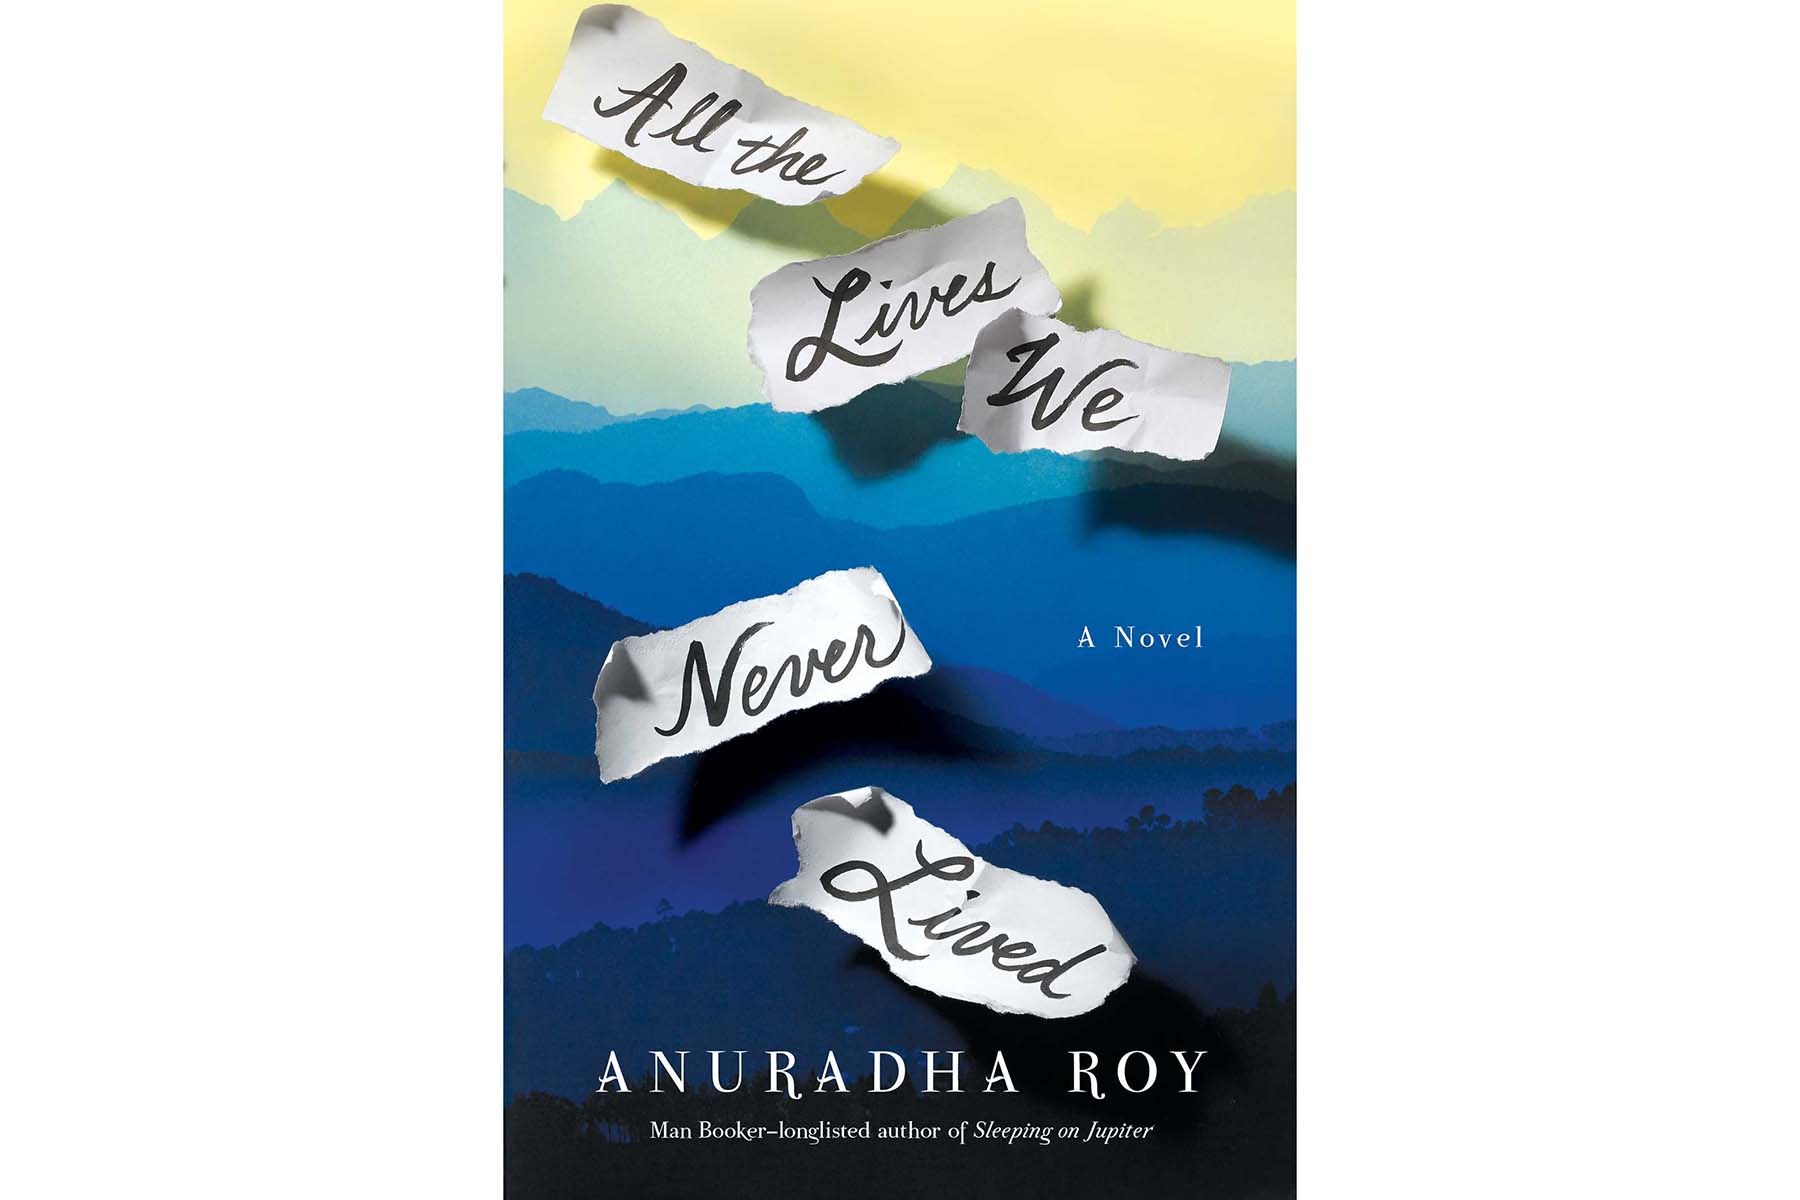 Cover of All the Lives We Never Lived, by Anuradha Roy